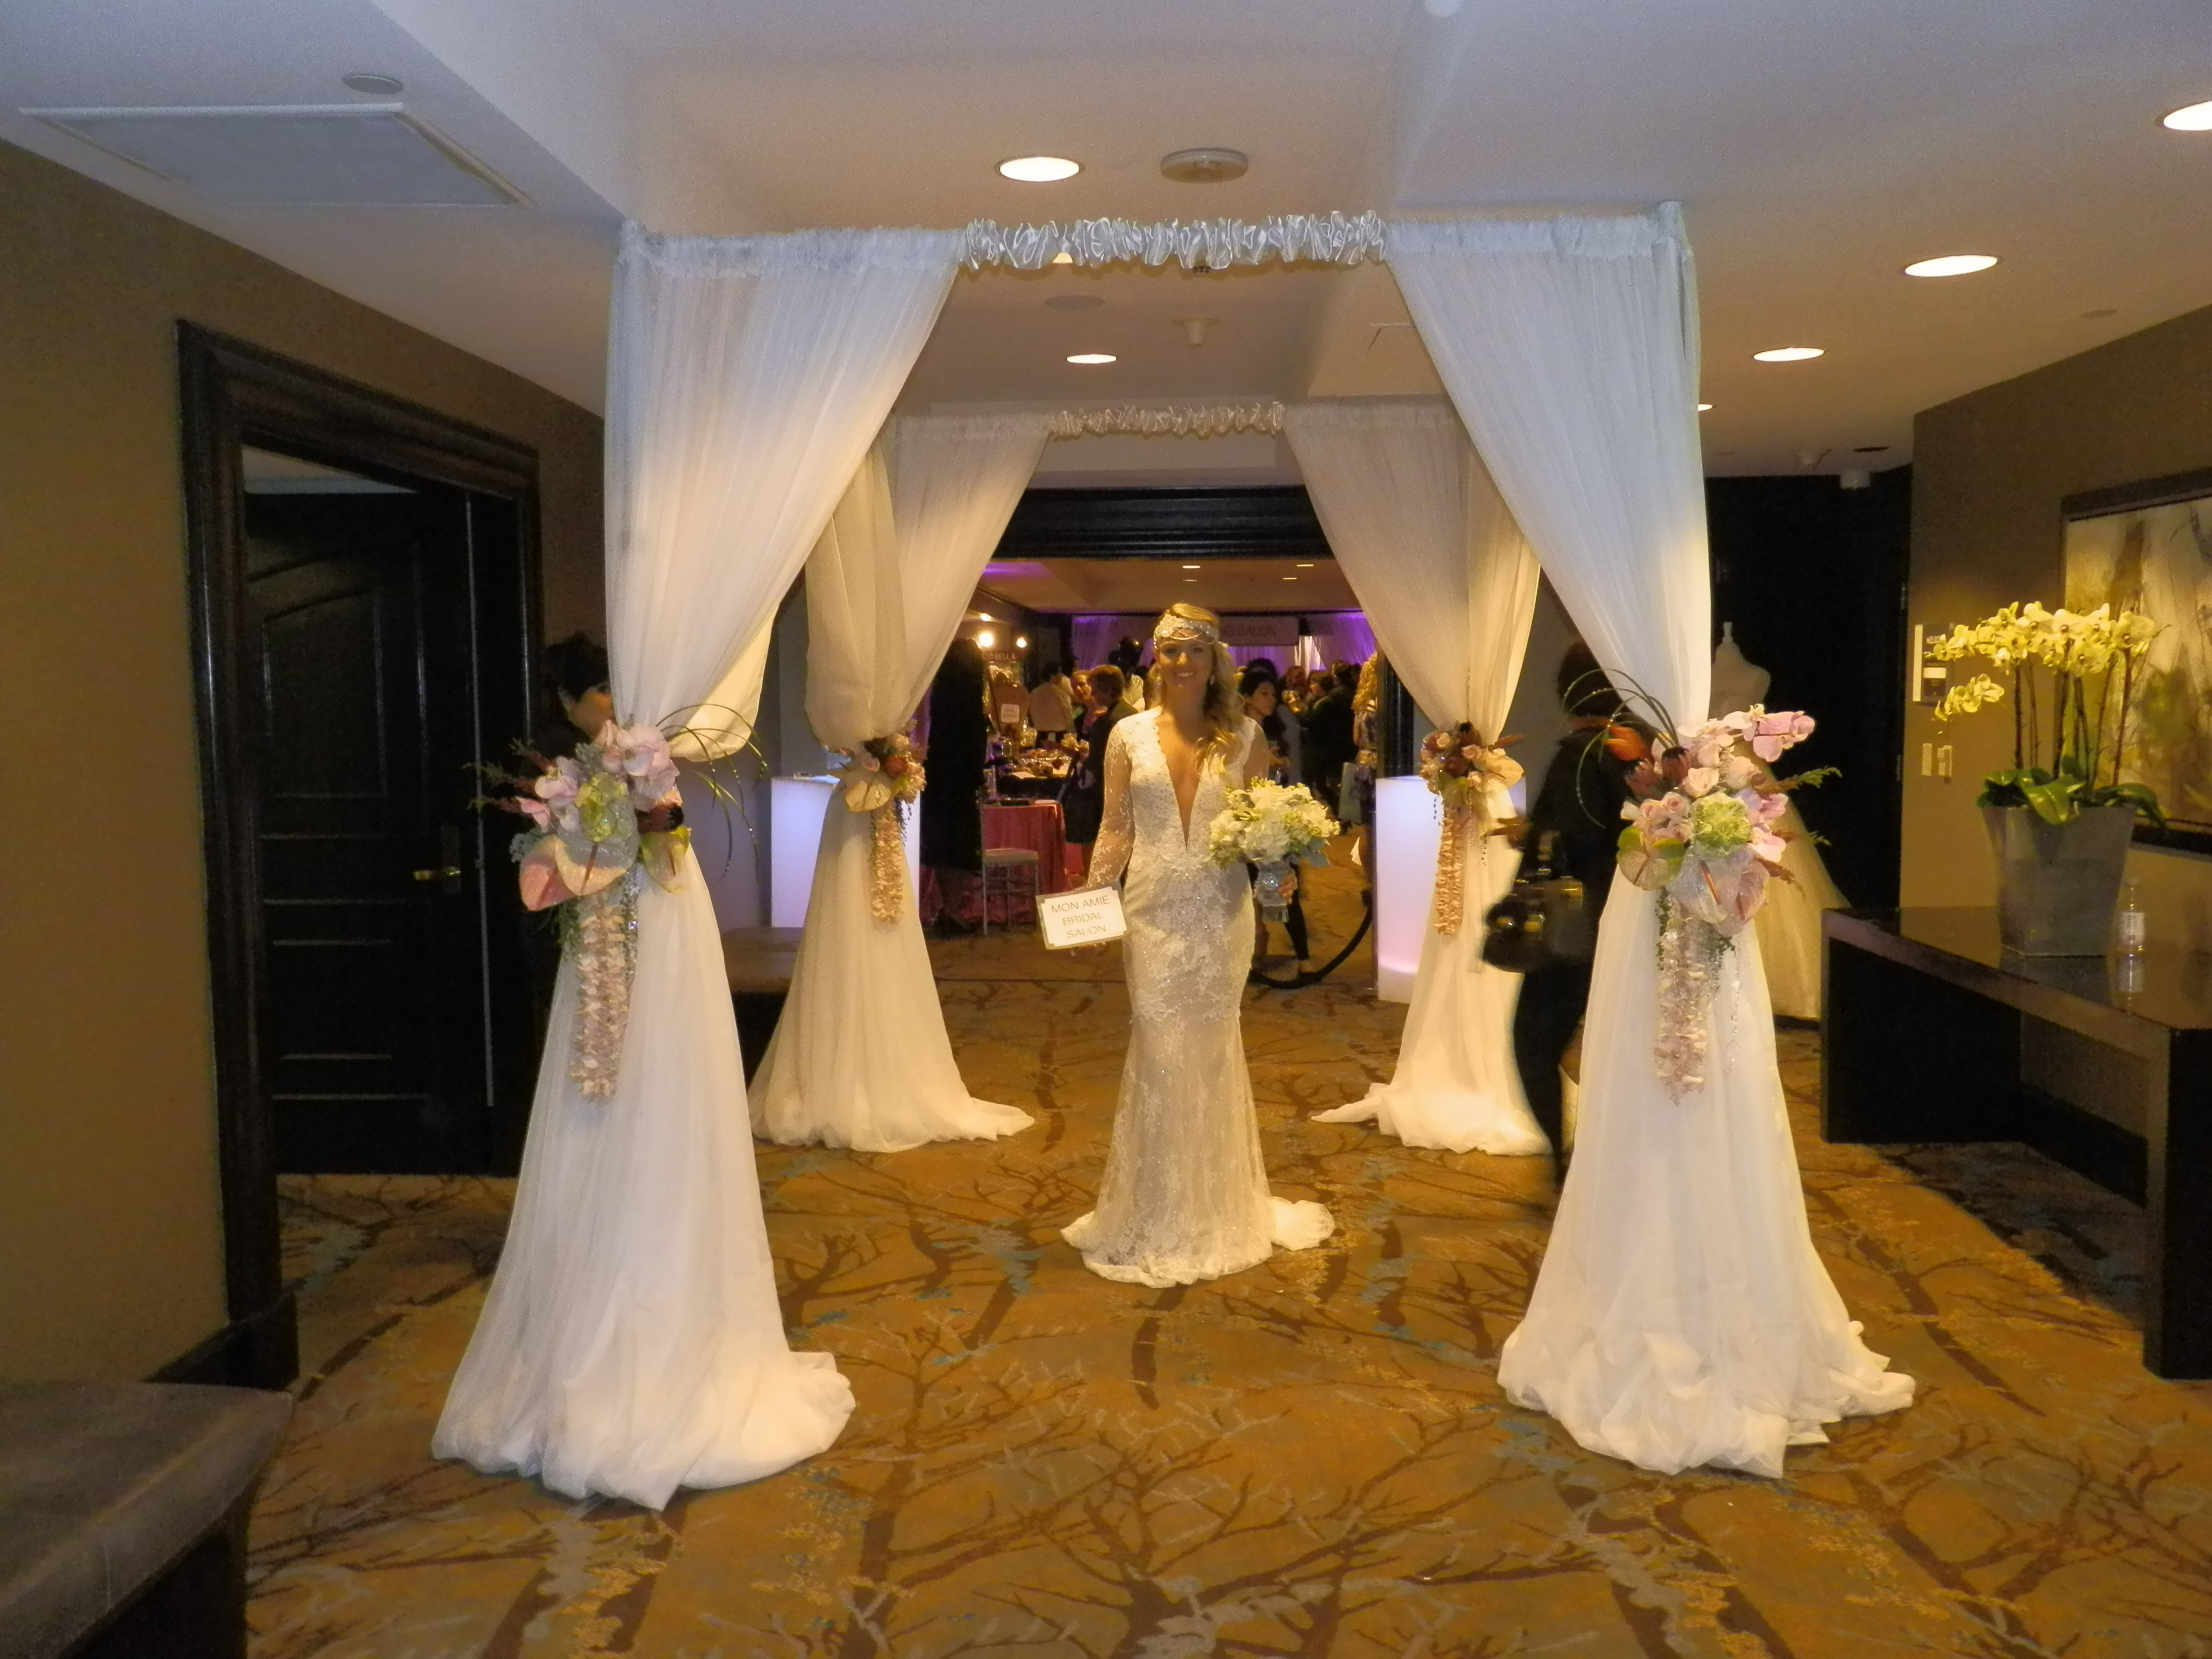 White 4 Post Canopy Created By SBD Event Designs Sheer Fabric With Flowers